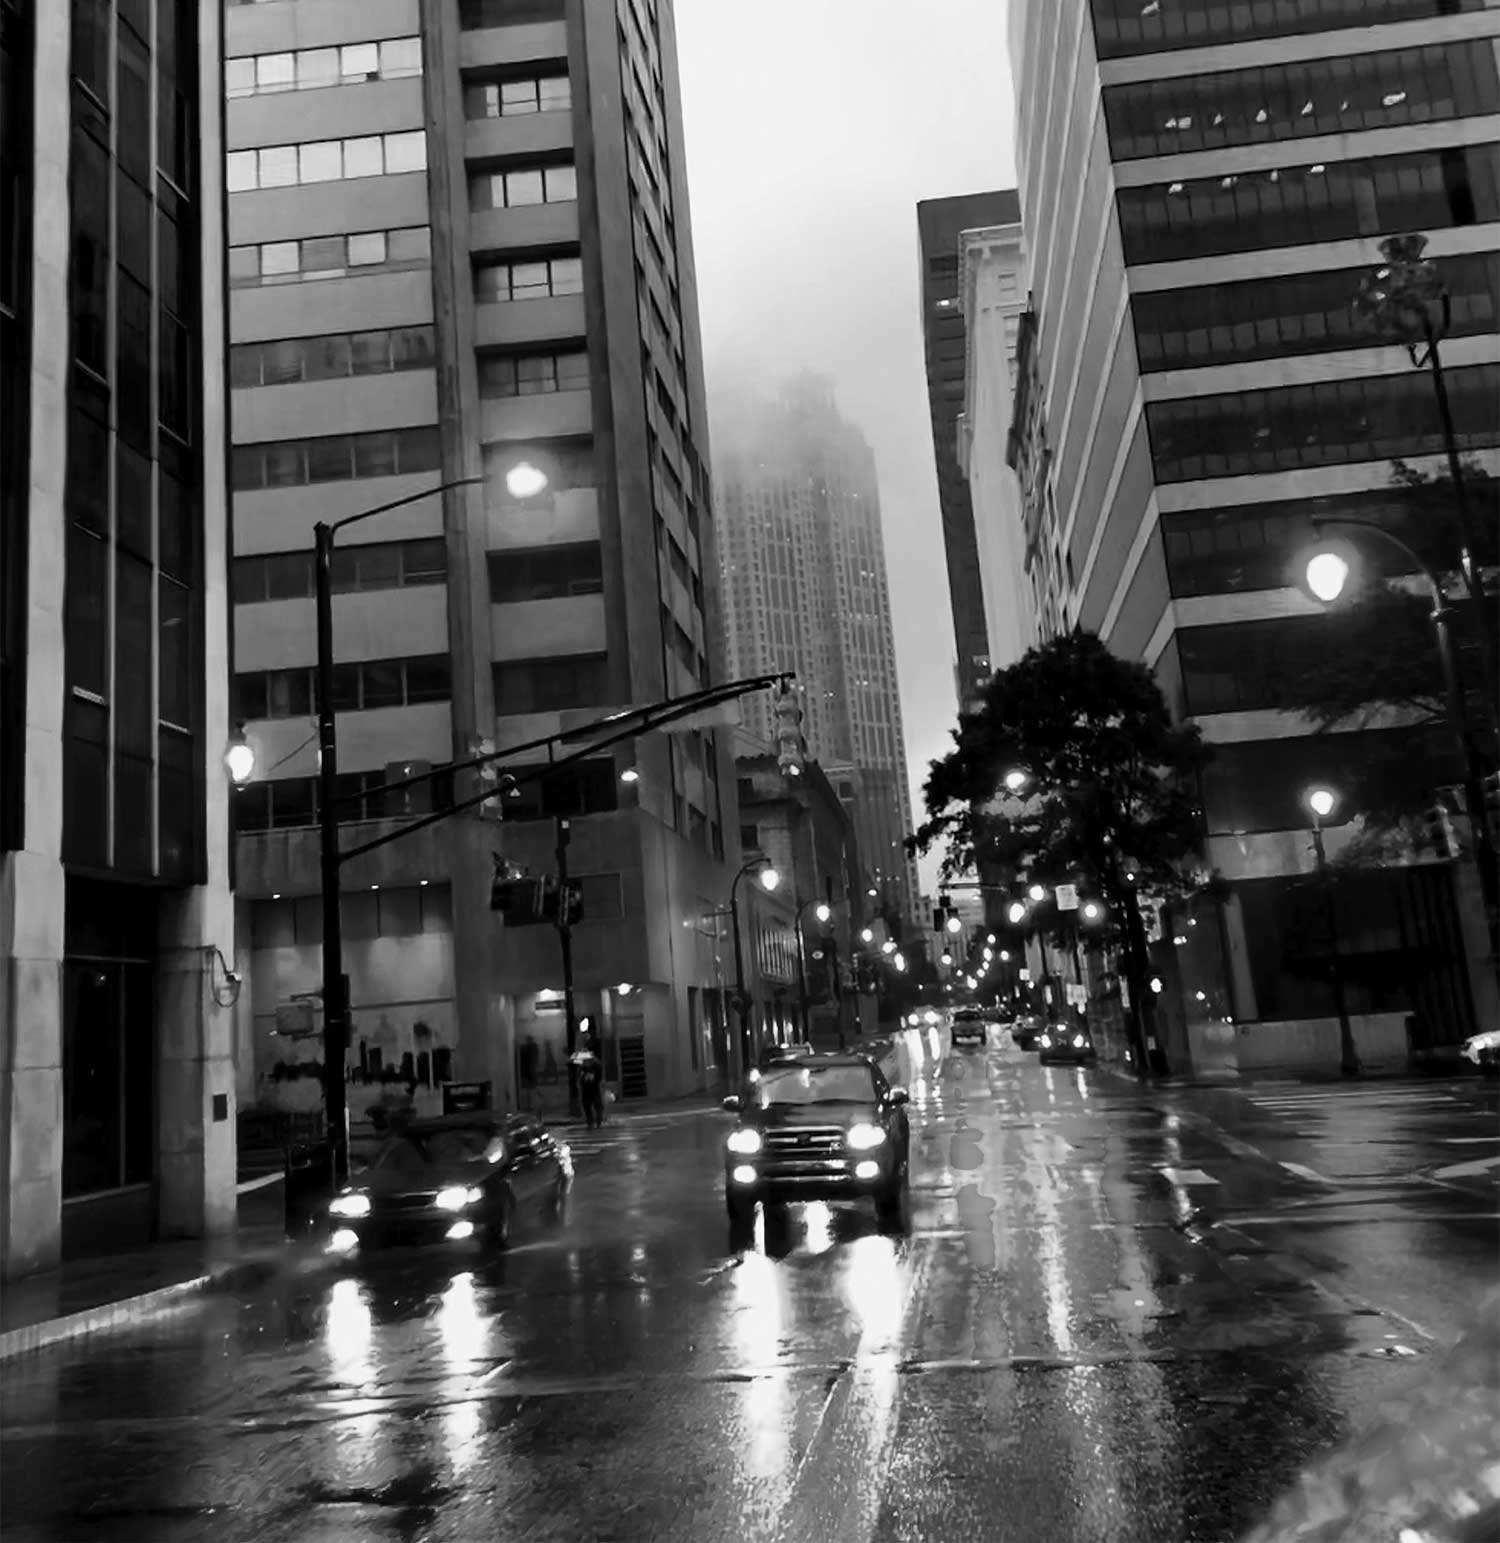 Photo of a city street in the rain